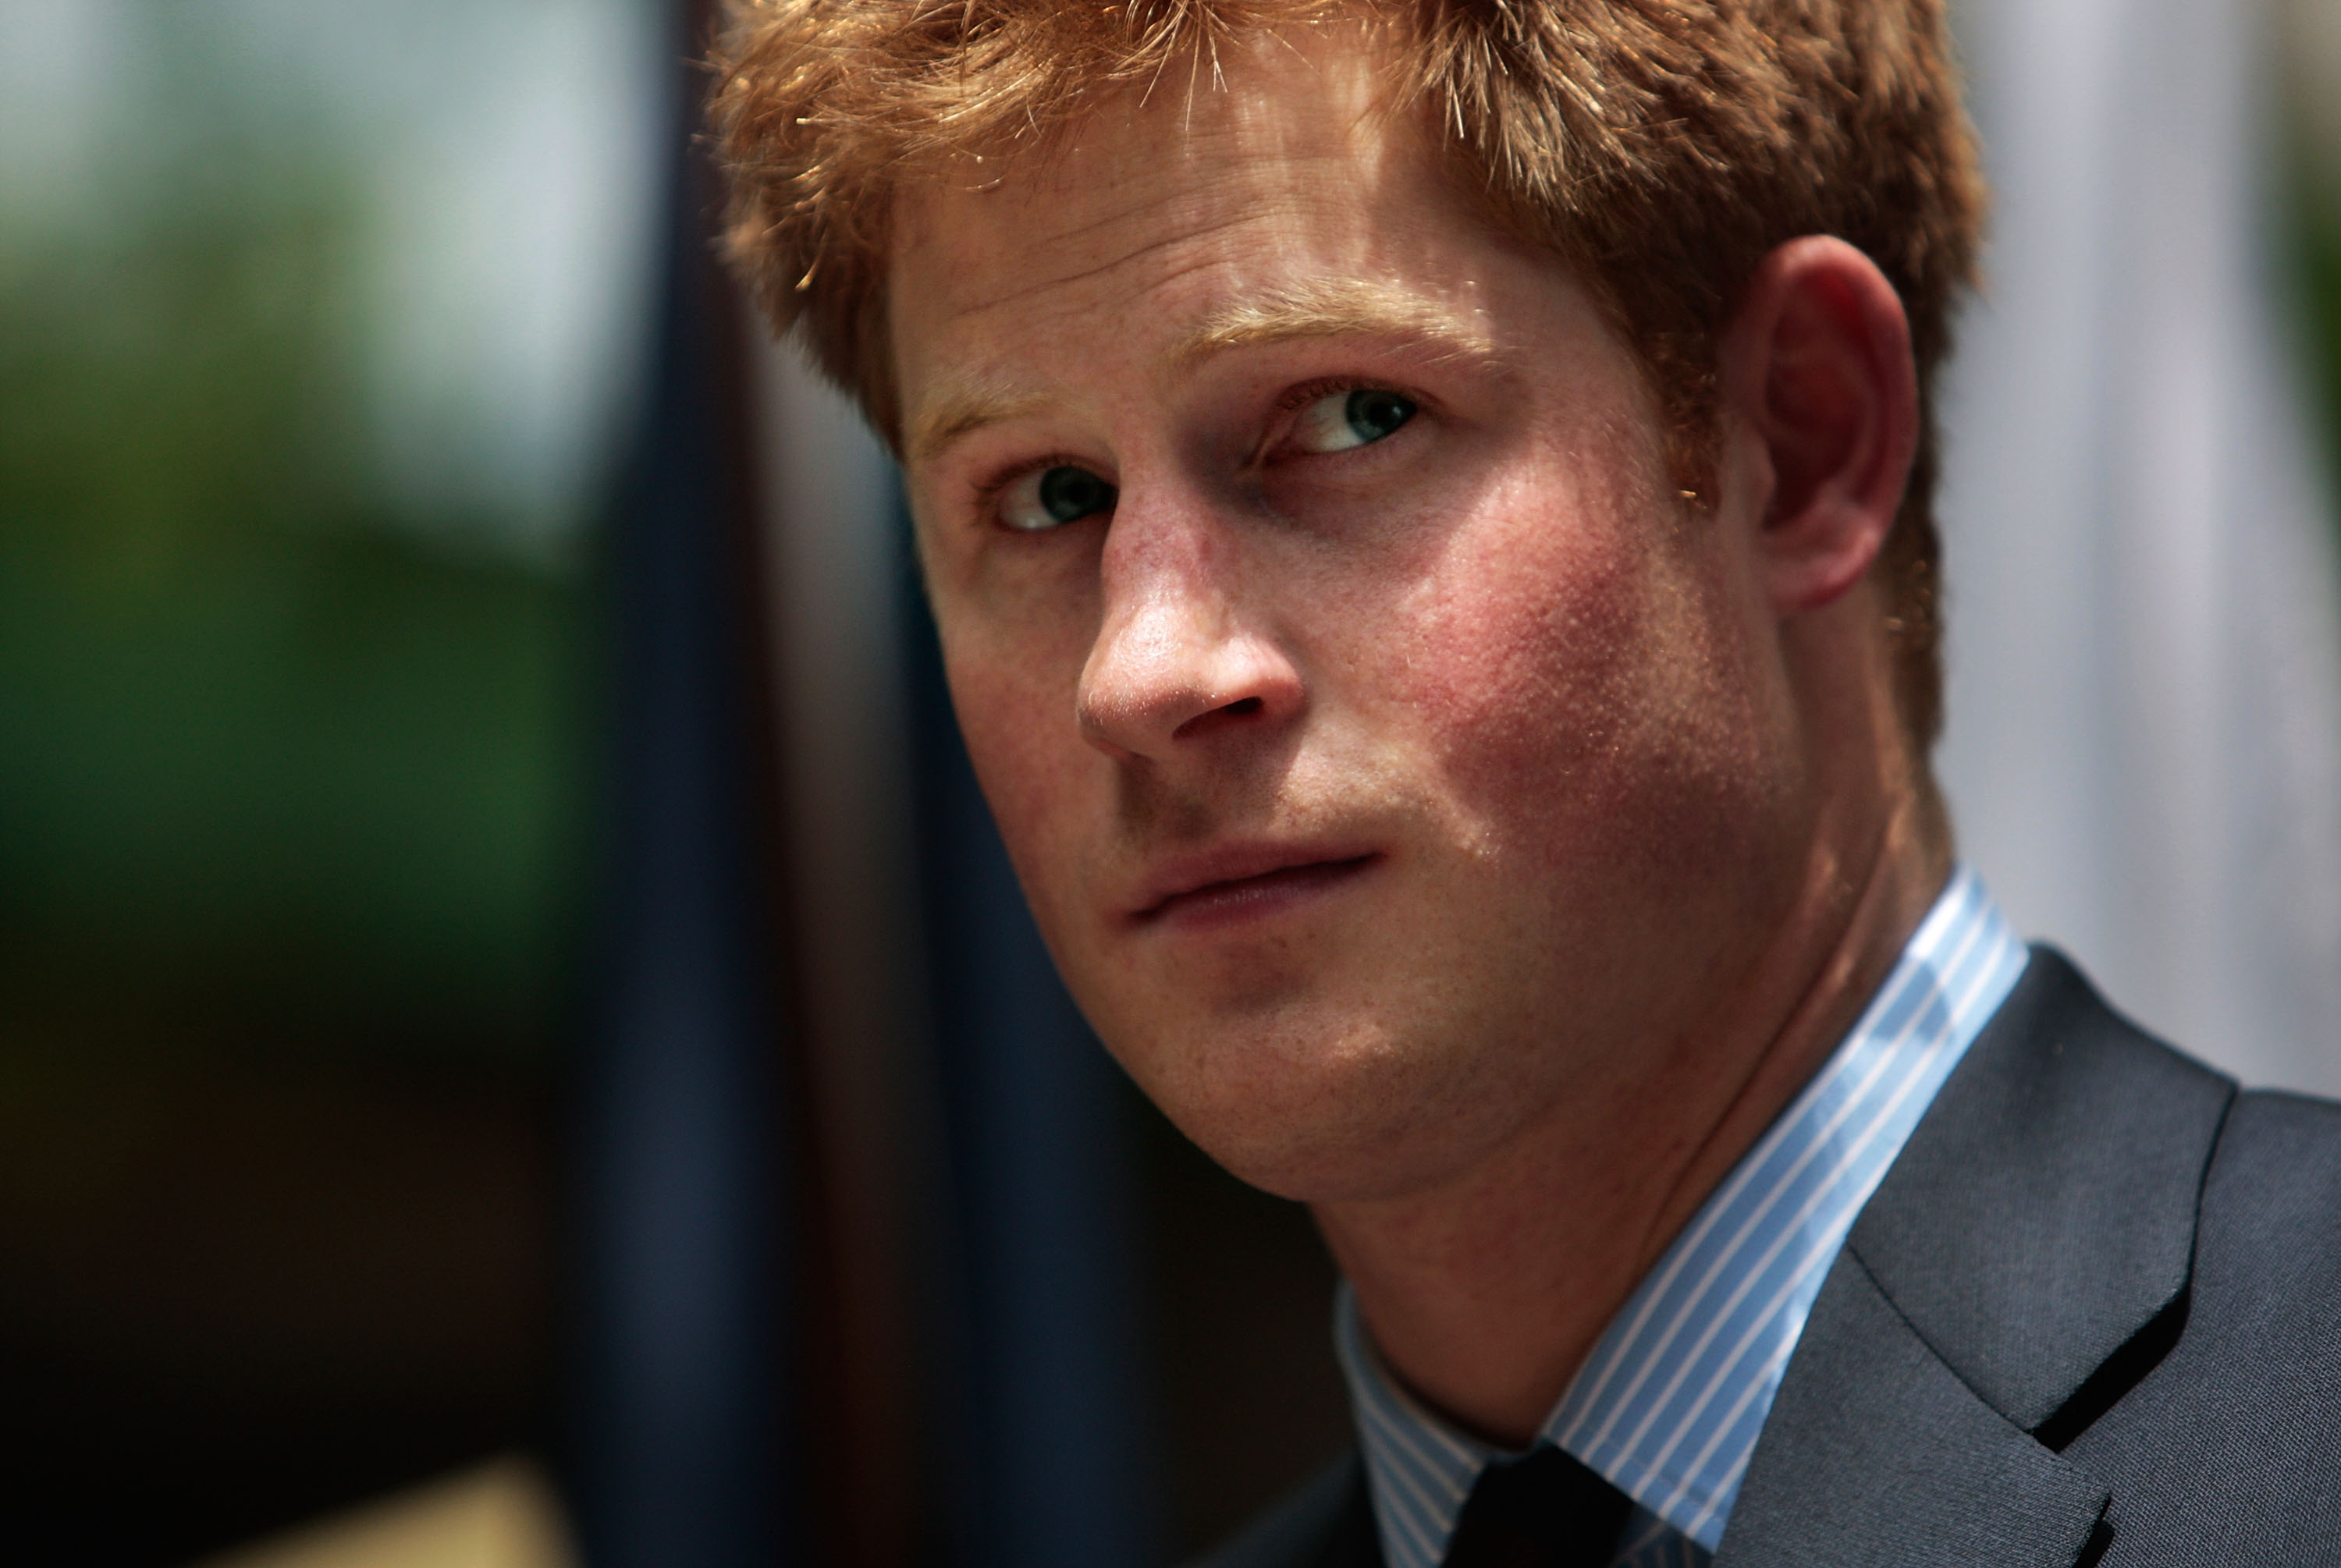 Prince Harry in 2009 before a trip to New York.